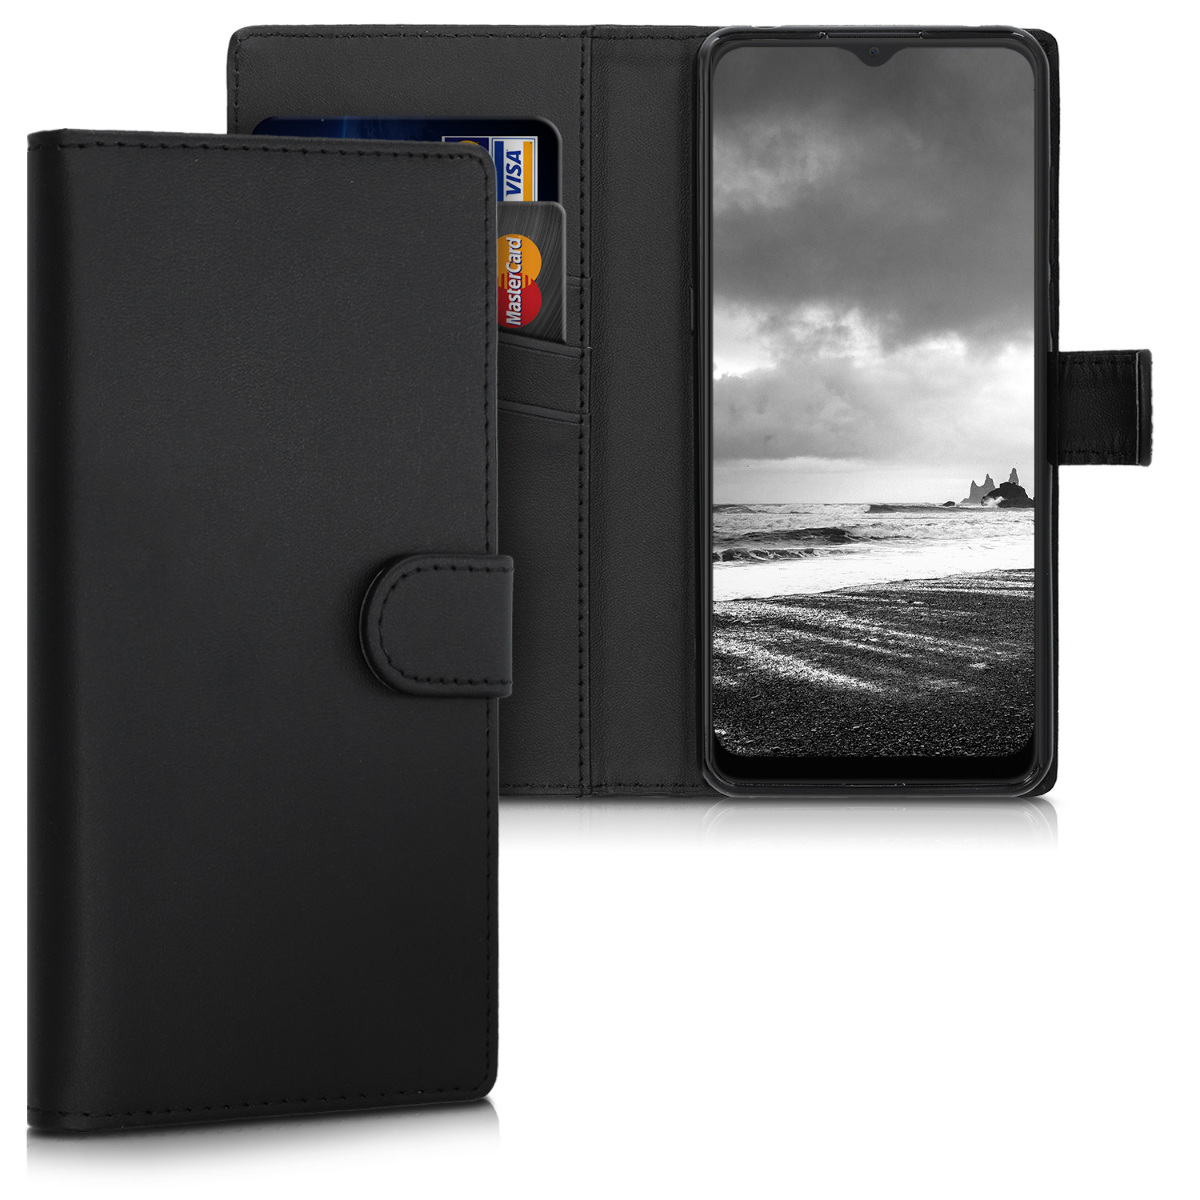 KW Θήκη - Πορτοφόλι Alcatel 3X 2019 - Protective PU Leather Flip Cover - Black (50512.01)